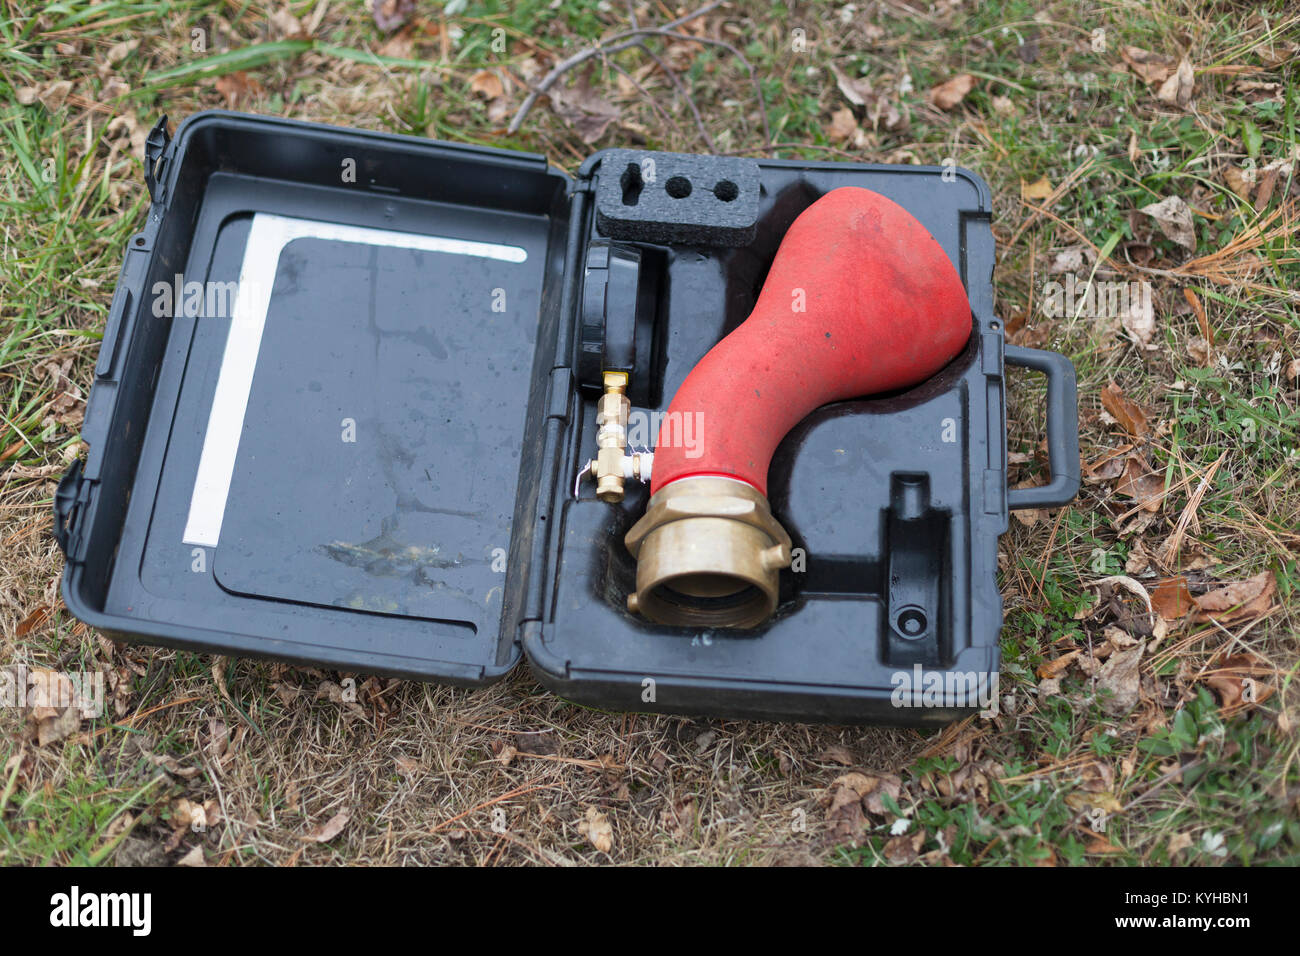 Hydrant attachment with sensor for flushing mains - Stock Image